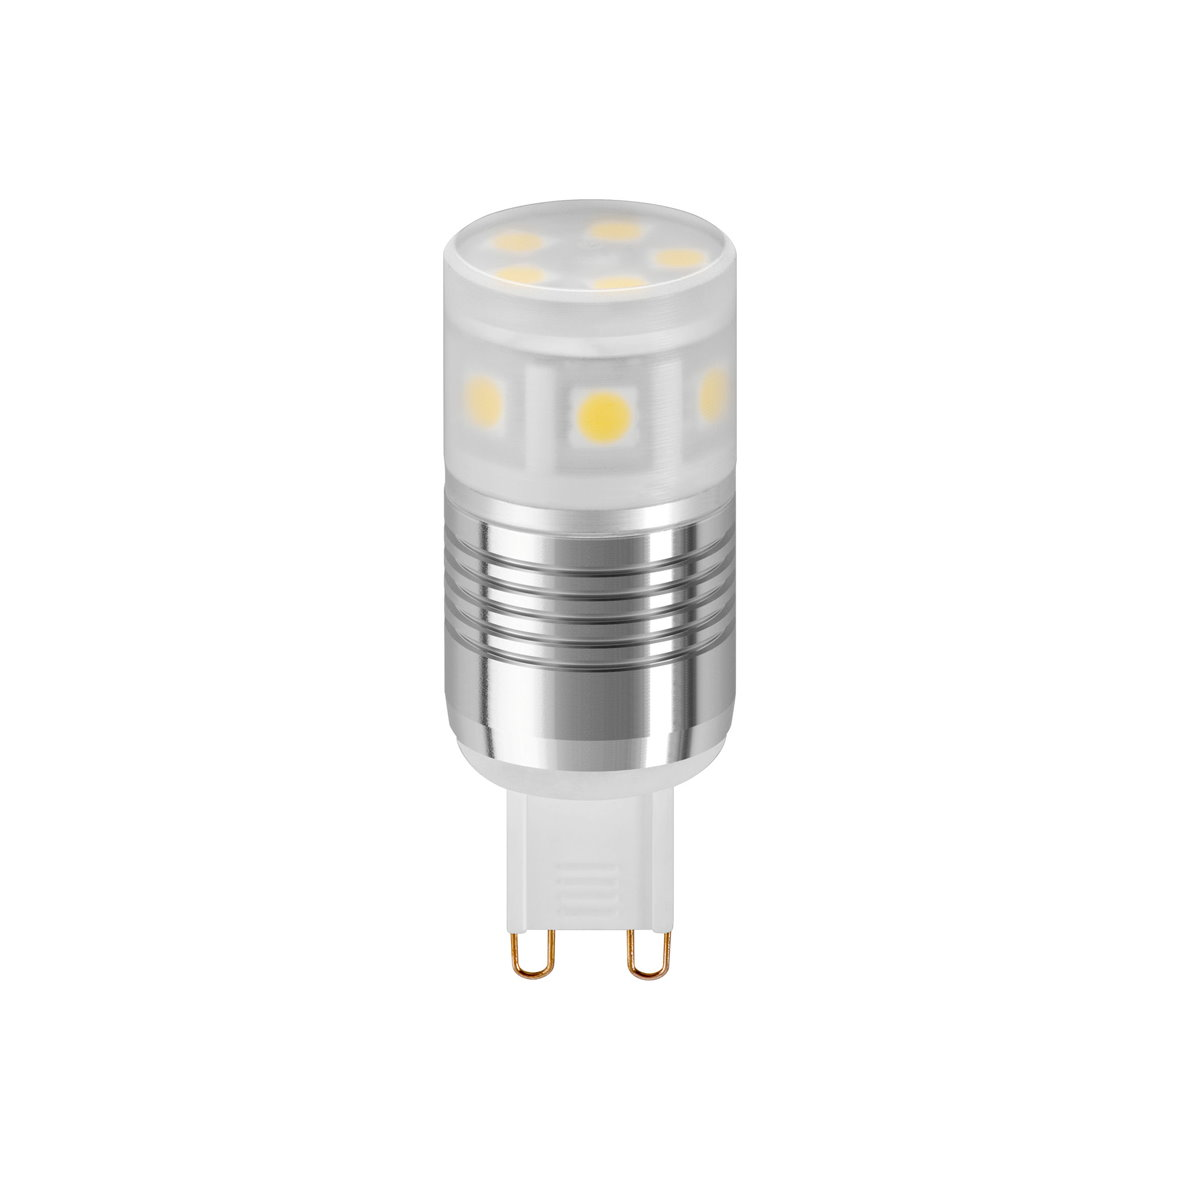 led smd g9 bulbs dimmable spotlight spot mini white warm white epistar g 9 gu9 ebay. Black Bedroom Furniture Sets. Home Design Ideas